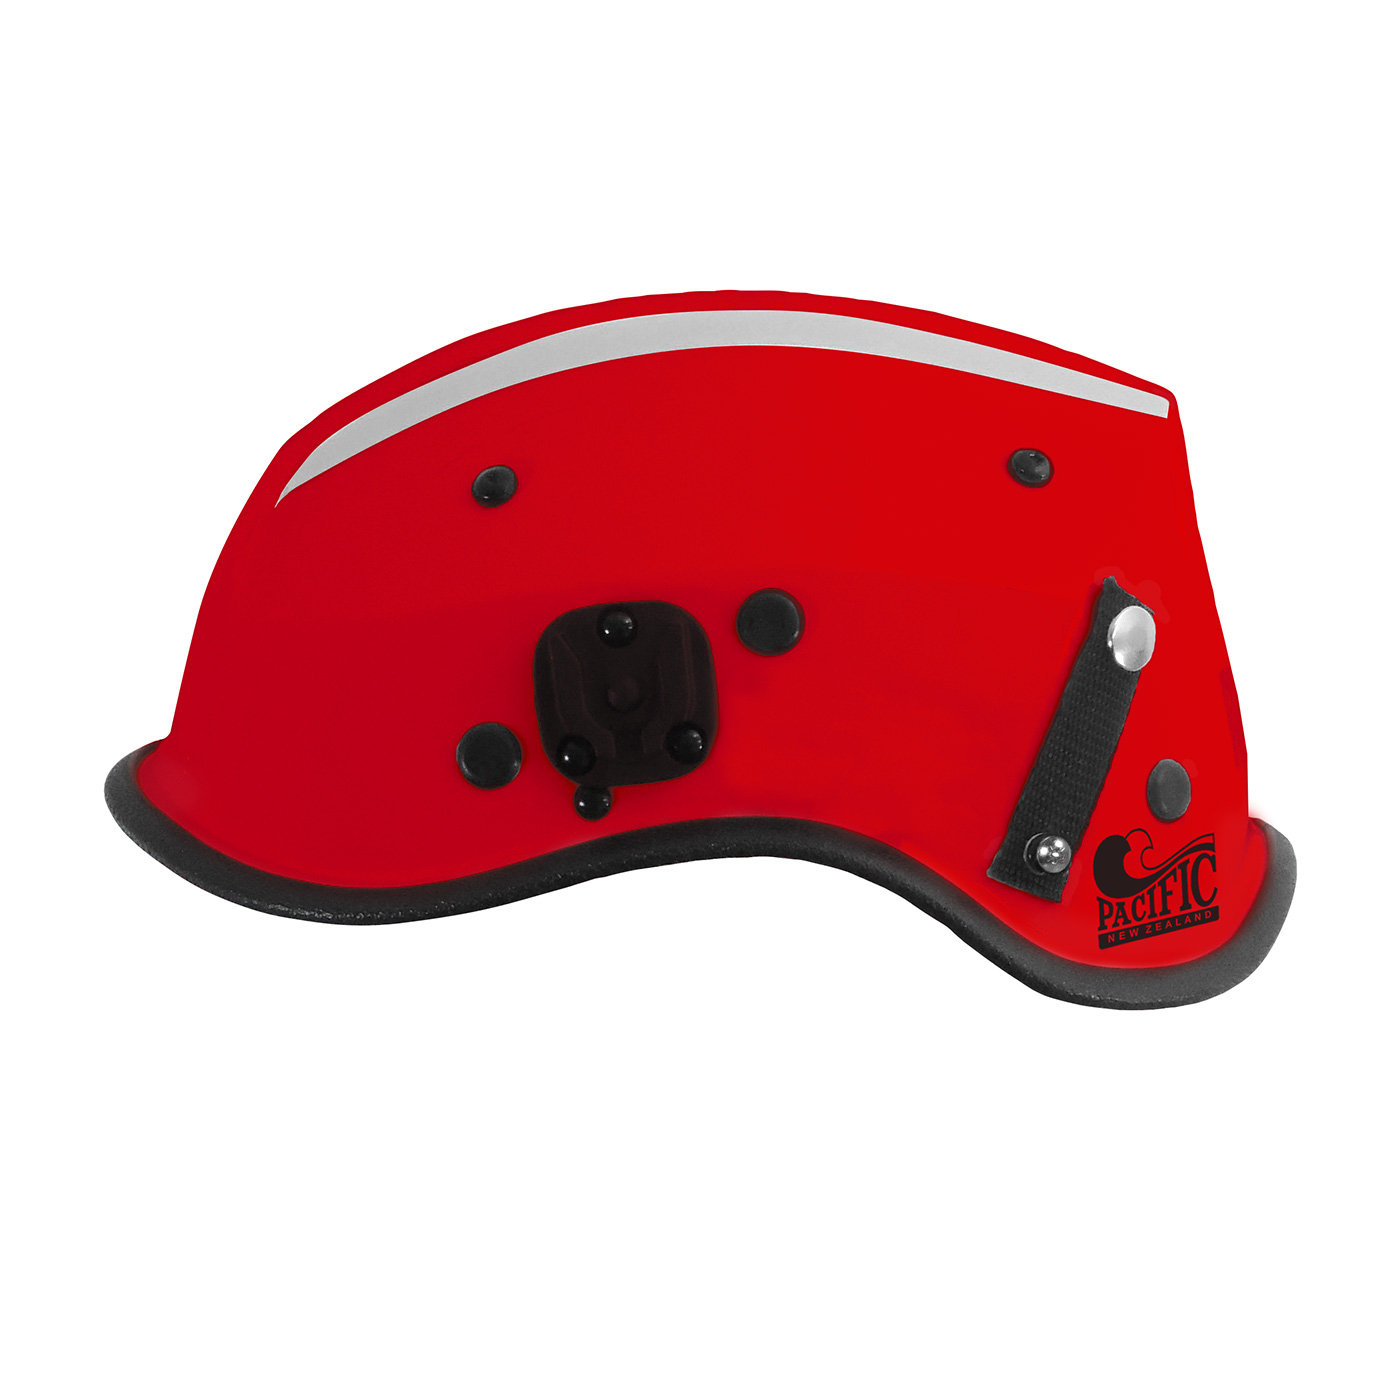 805-35XX PIP® Pacific R6C Dominator™ Non-Vented Rescue Helmet with Retractable Eye Protector, Red